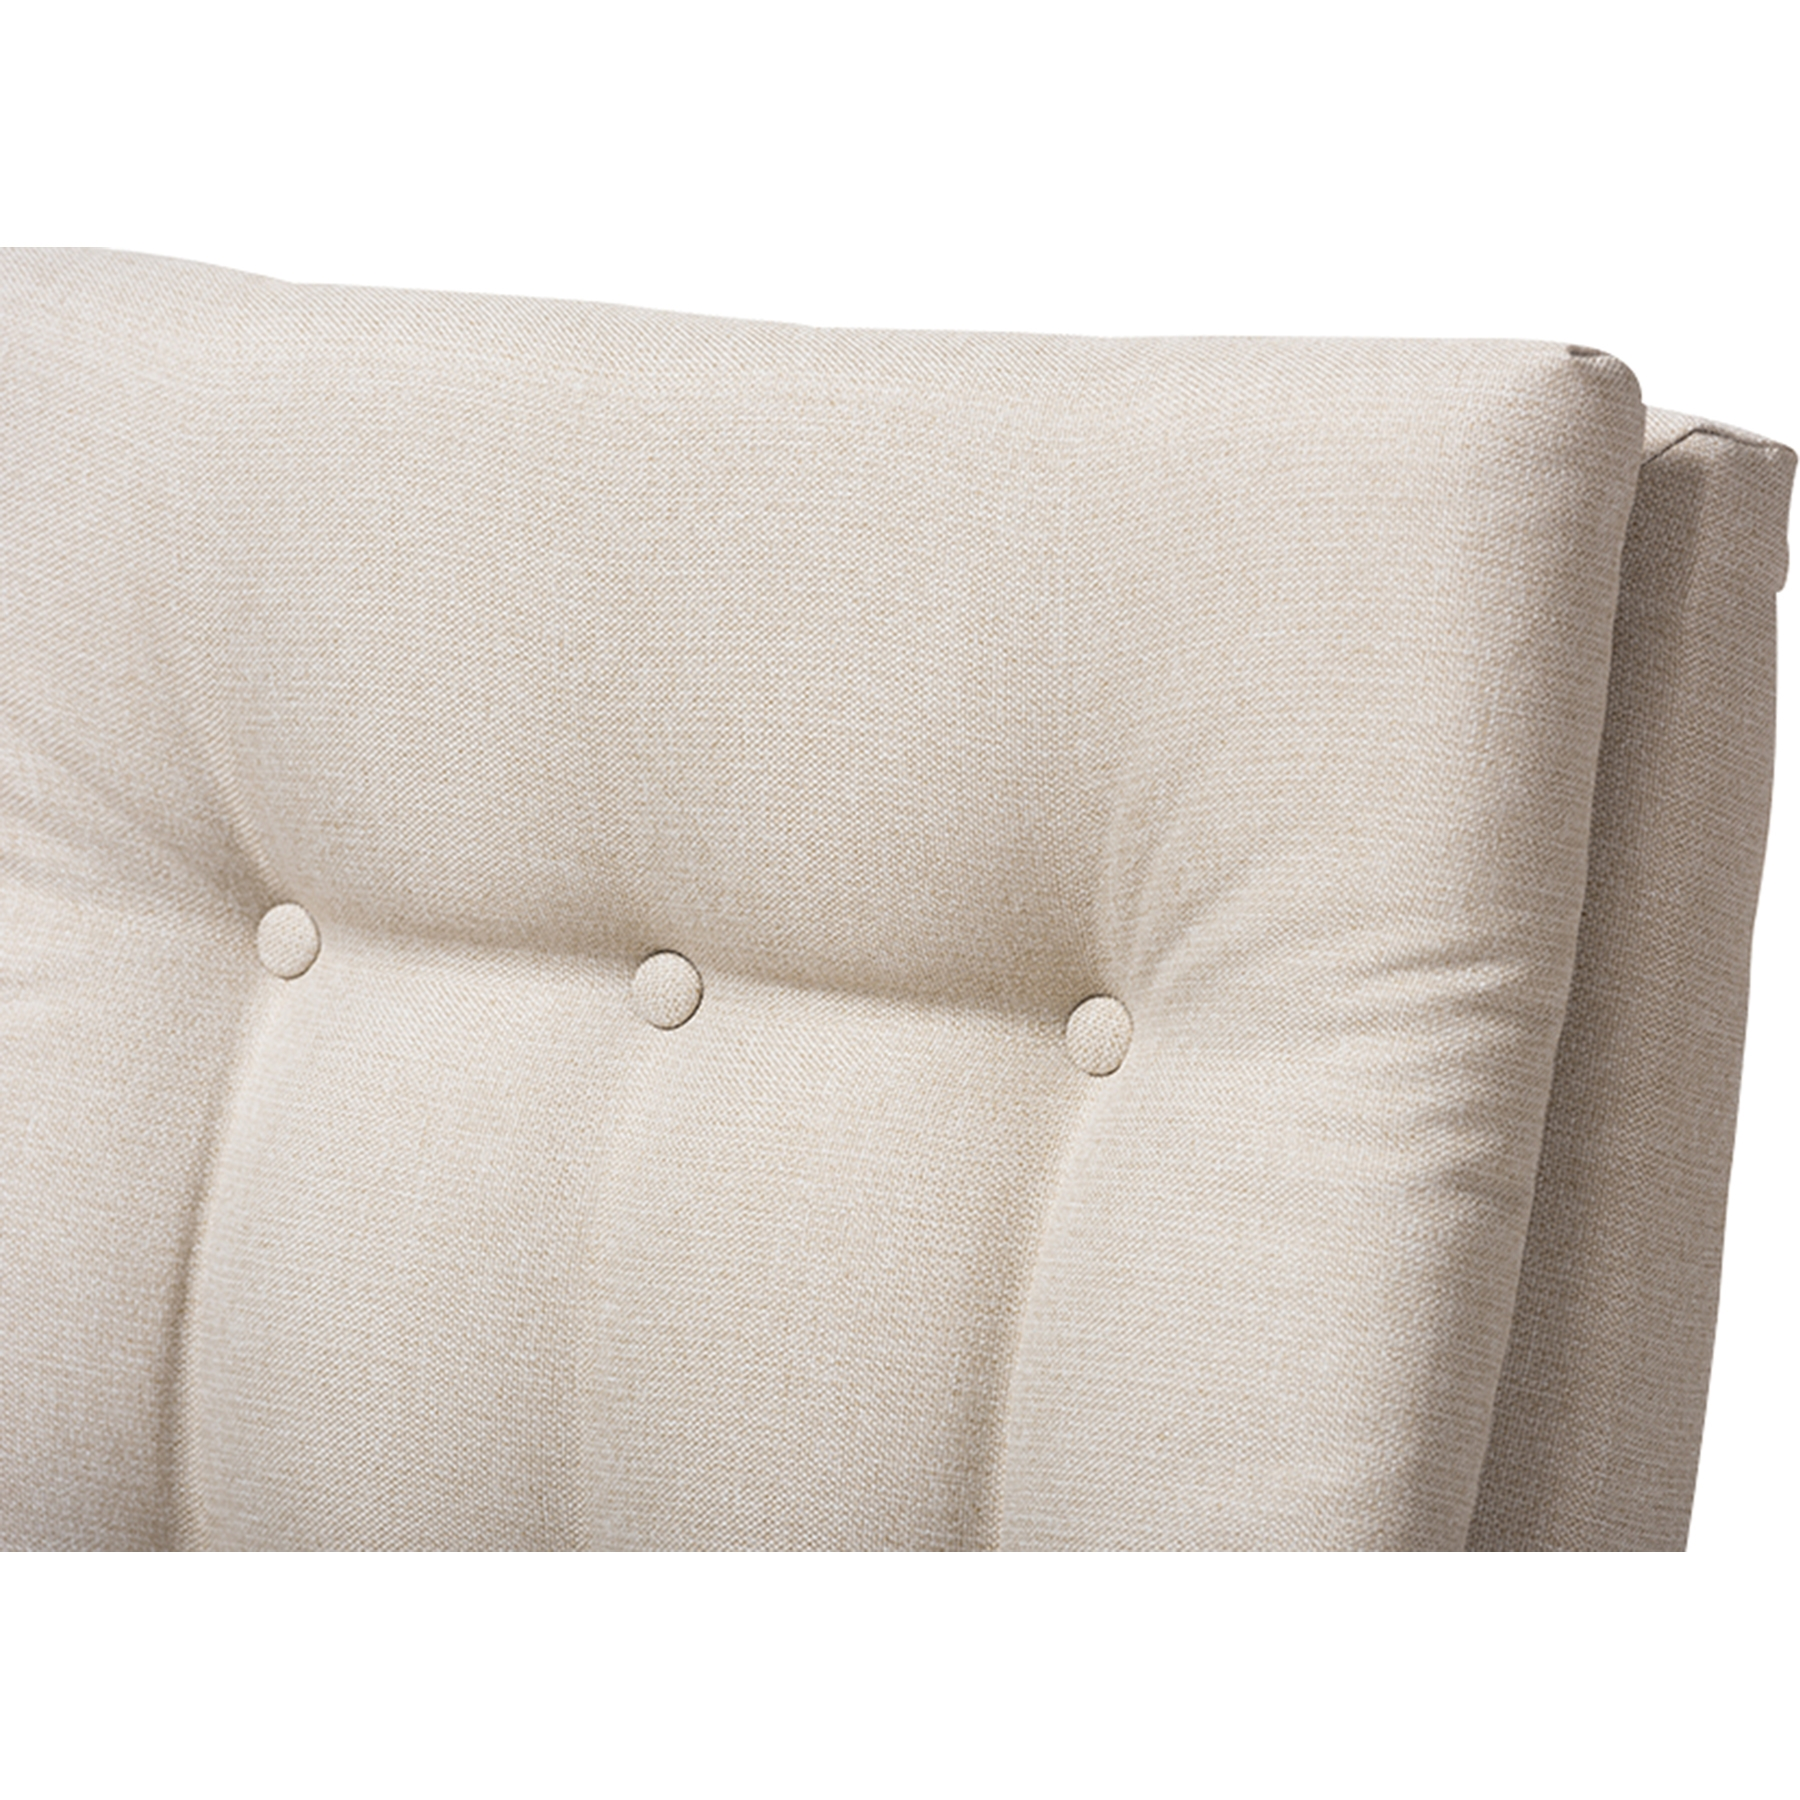 Tufted High Back Chair Roxy Upholstered High Back Chair Button Tufted Light Beige